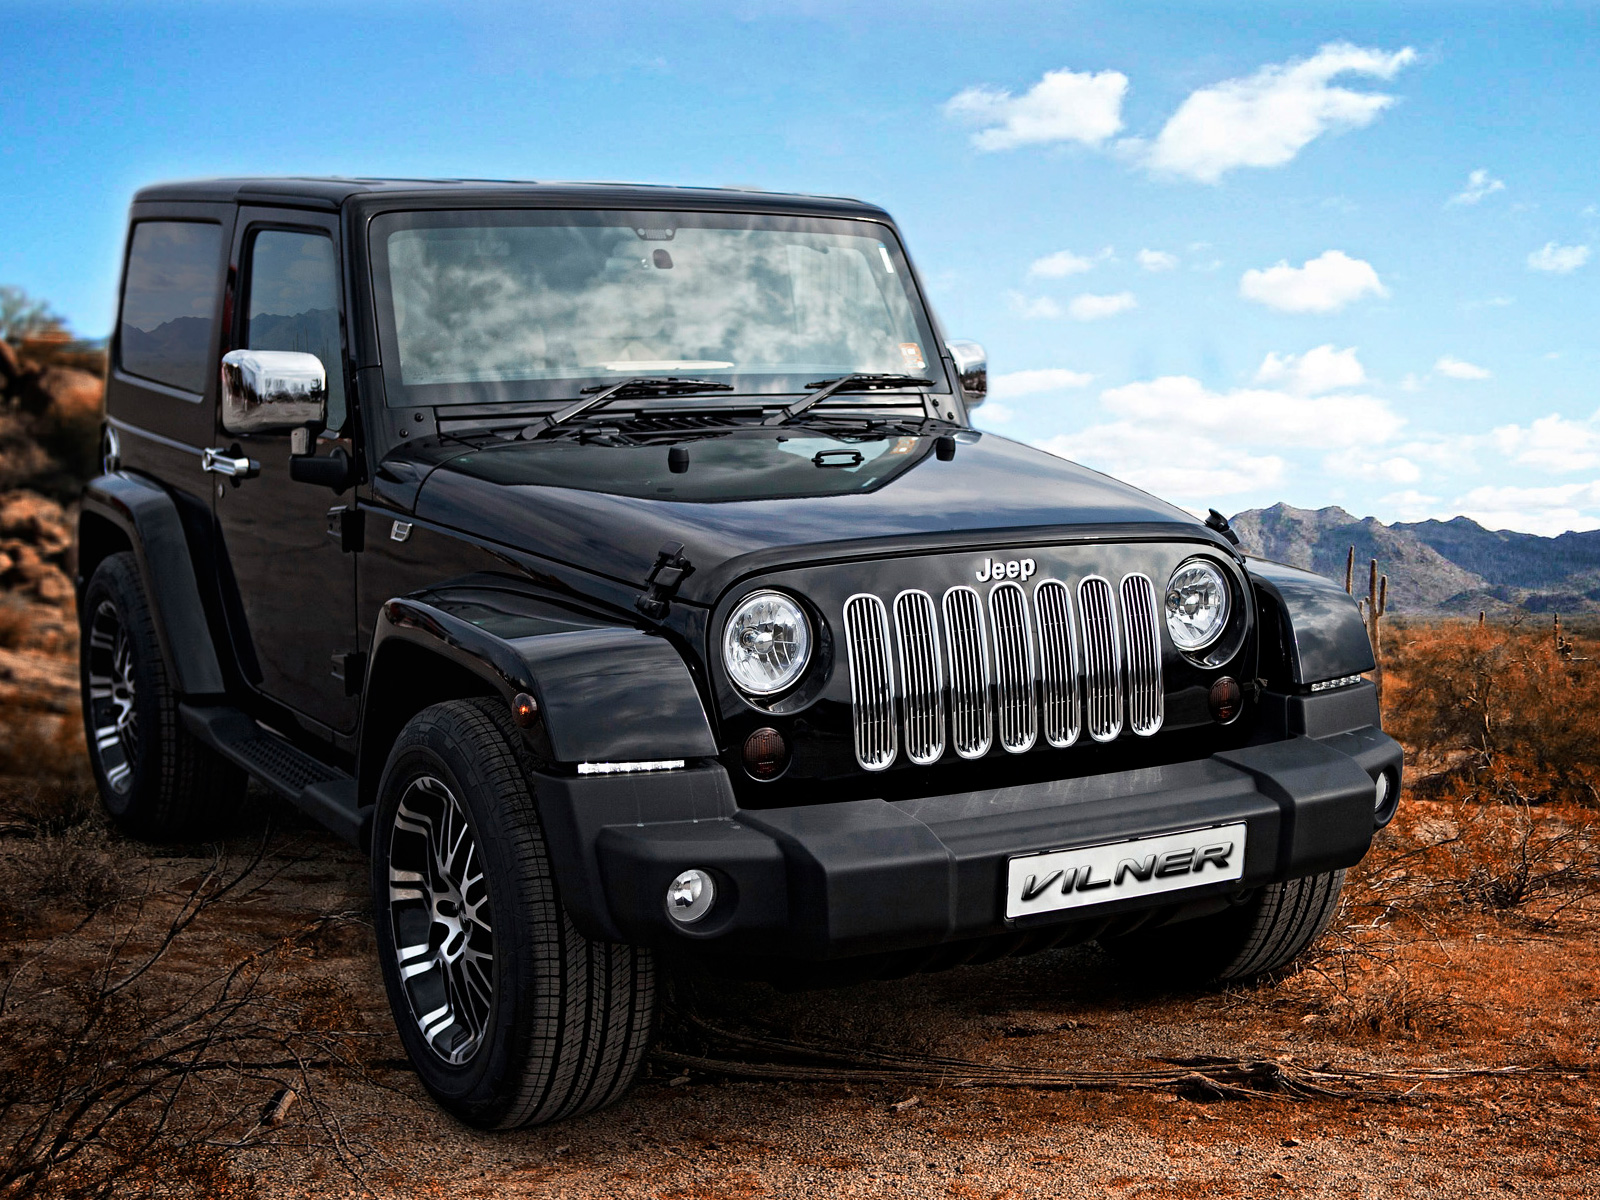 My Perfect Jeep Wrangler Rubicon 3dtuning Probably The